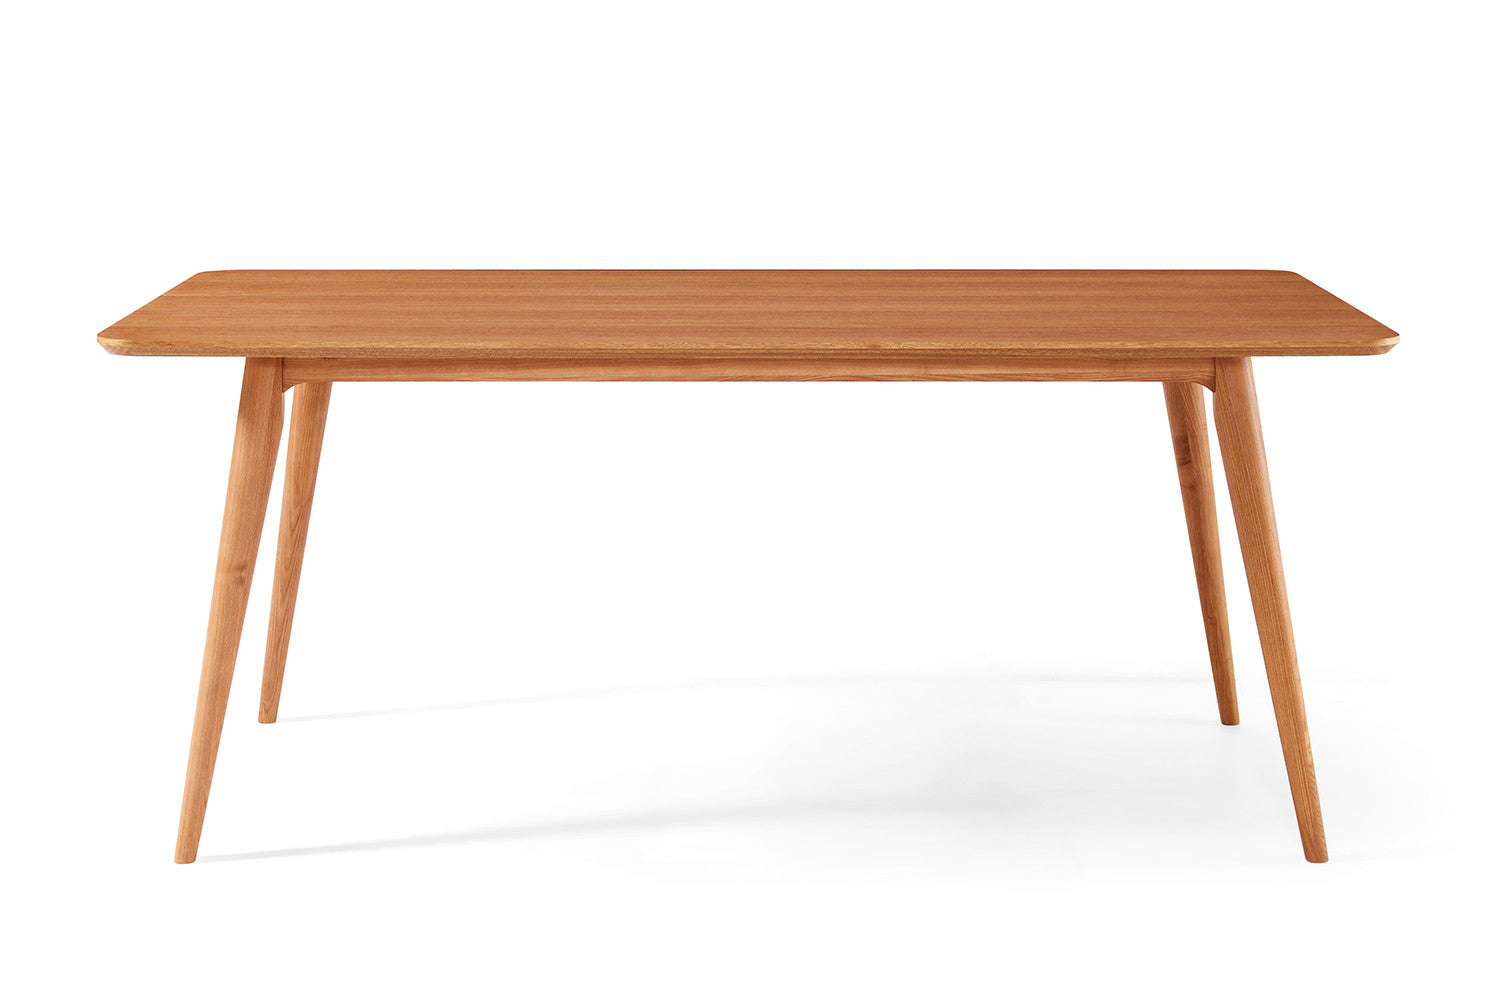 Table de salle manger design en bois julia dewarens for Table de salle a manger design